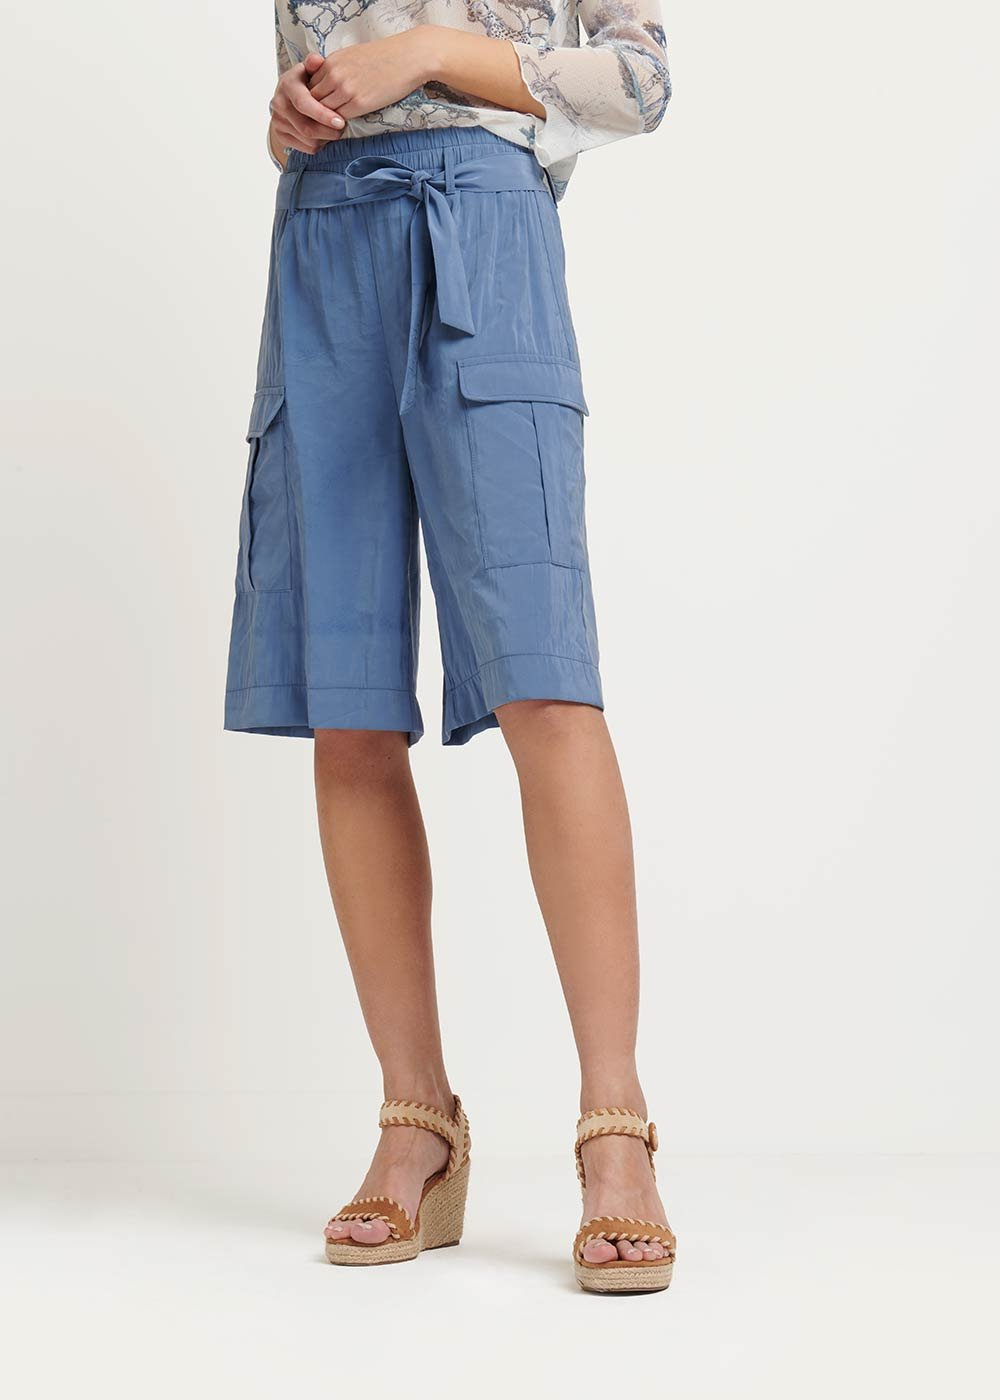 Brand bermuda shorts with side pockets - Blue - Woman